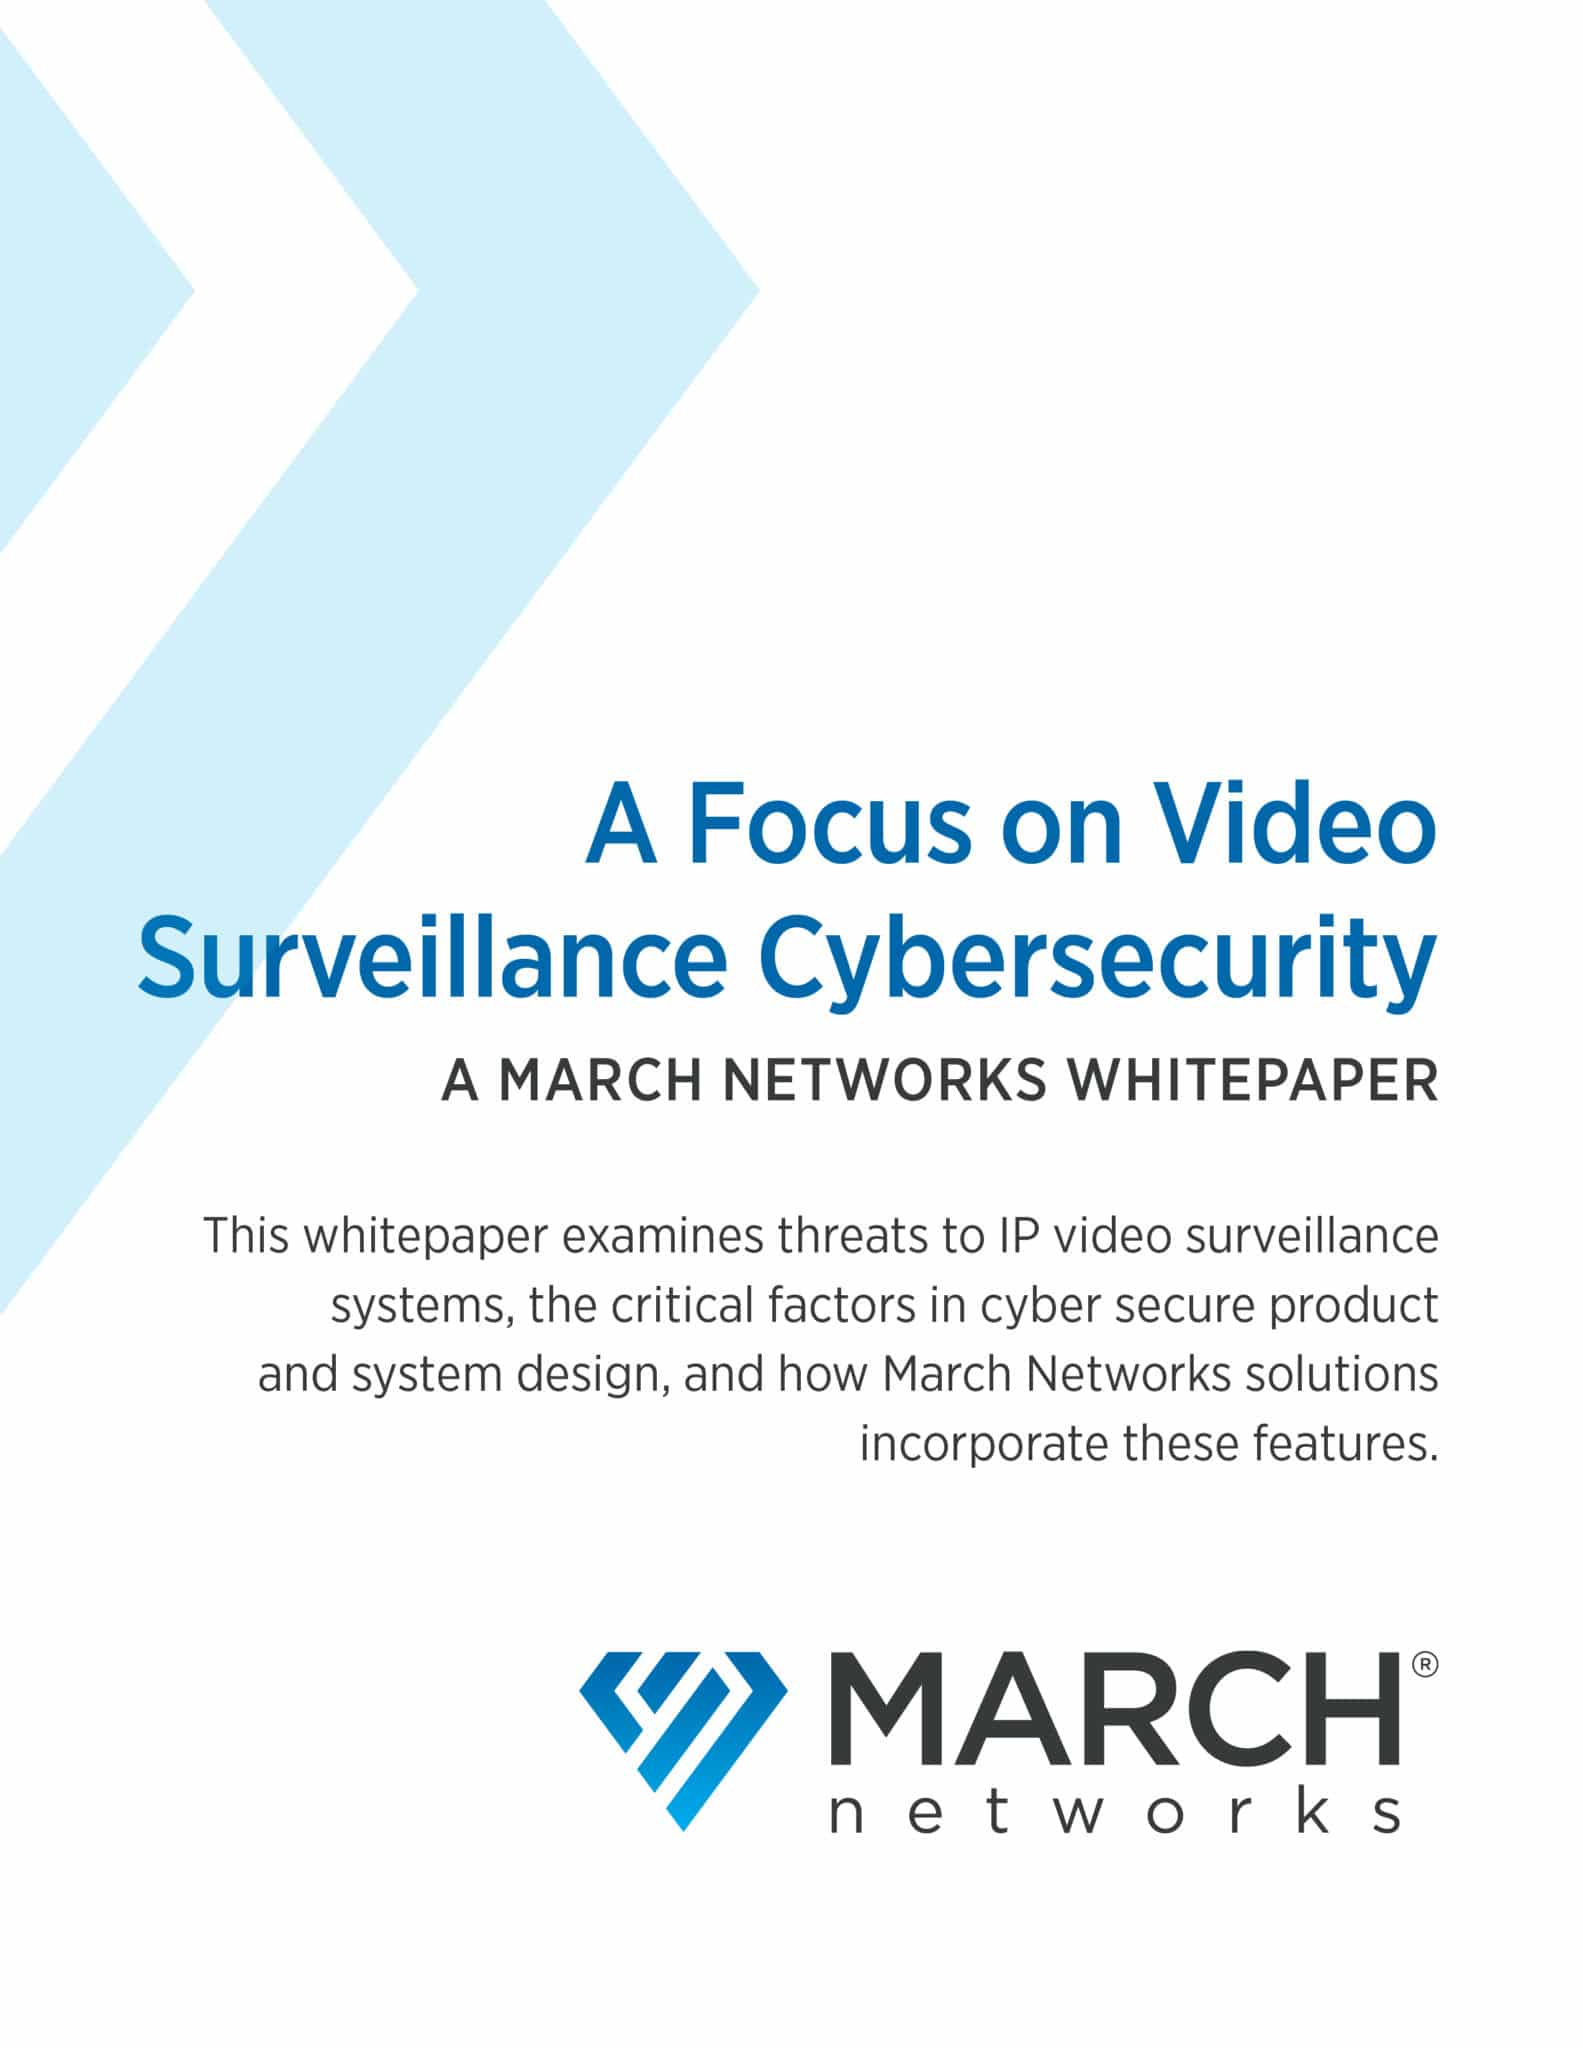 6297_March_Networks_WP_Video_Surv_Cybersecurity_cover for ad[19]